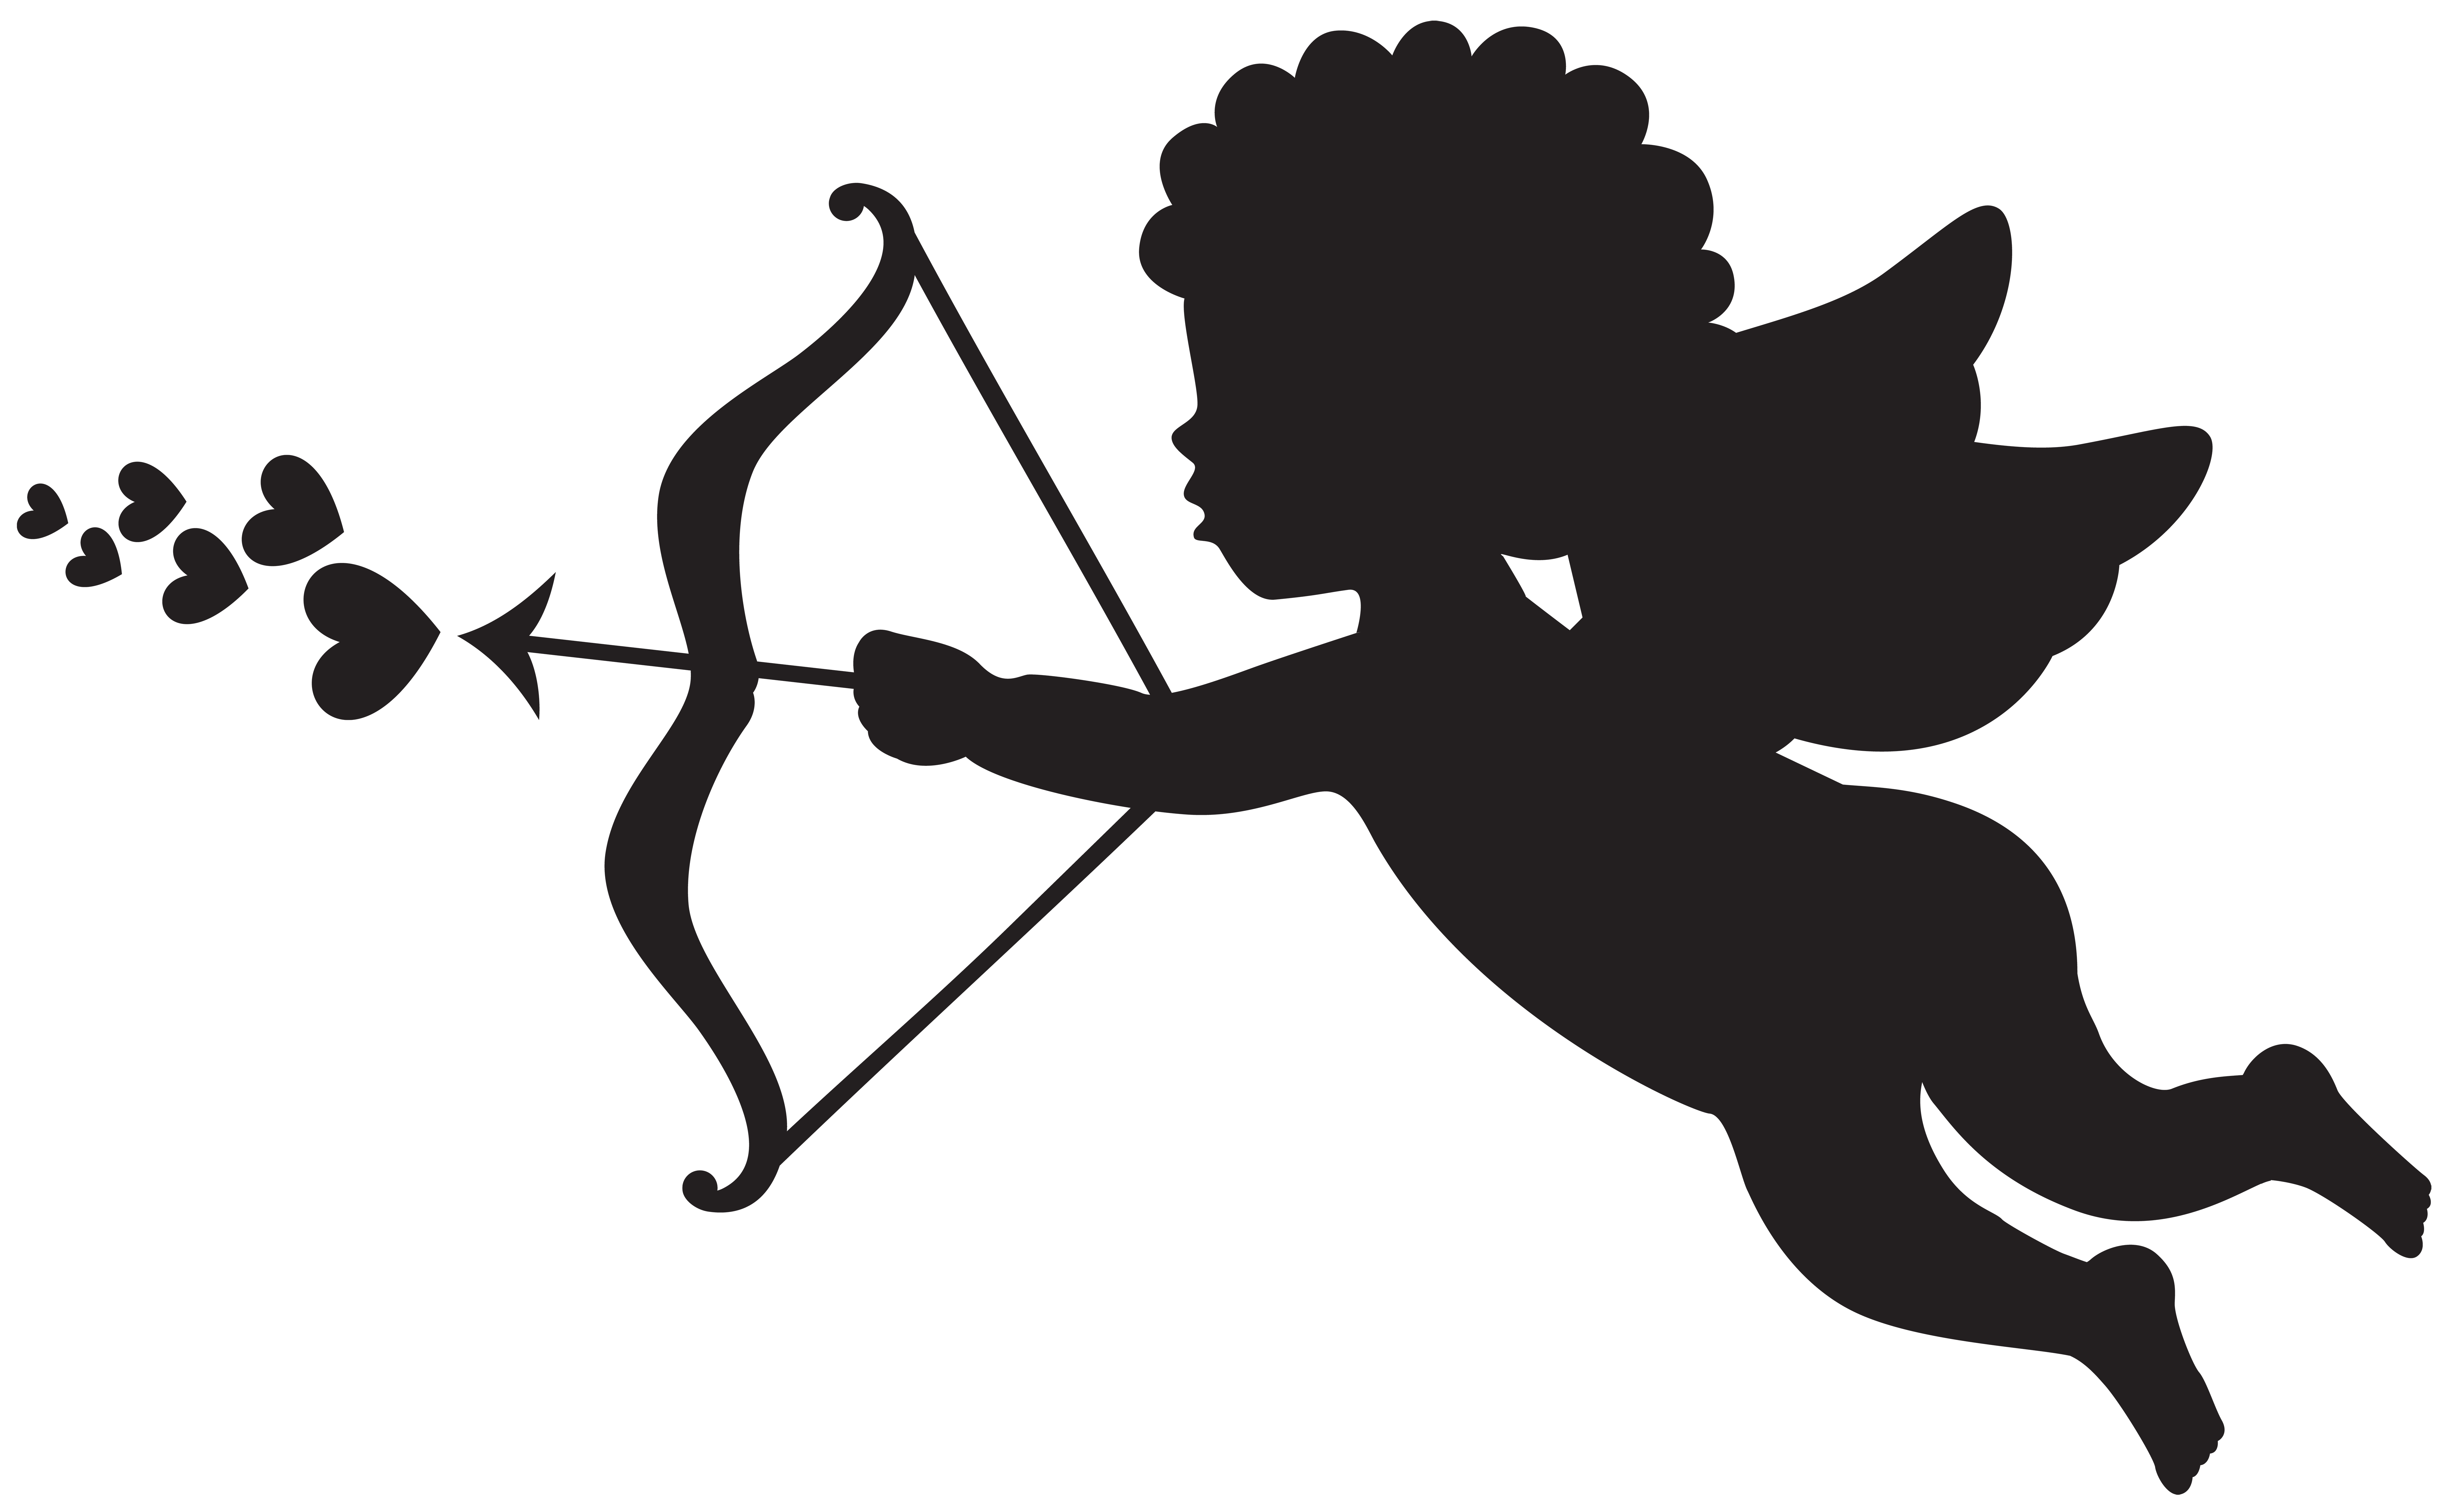 Cupid silhouette png. Clip art gallery yopriceville